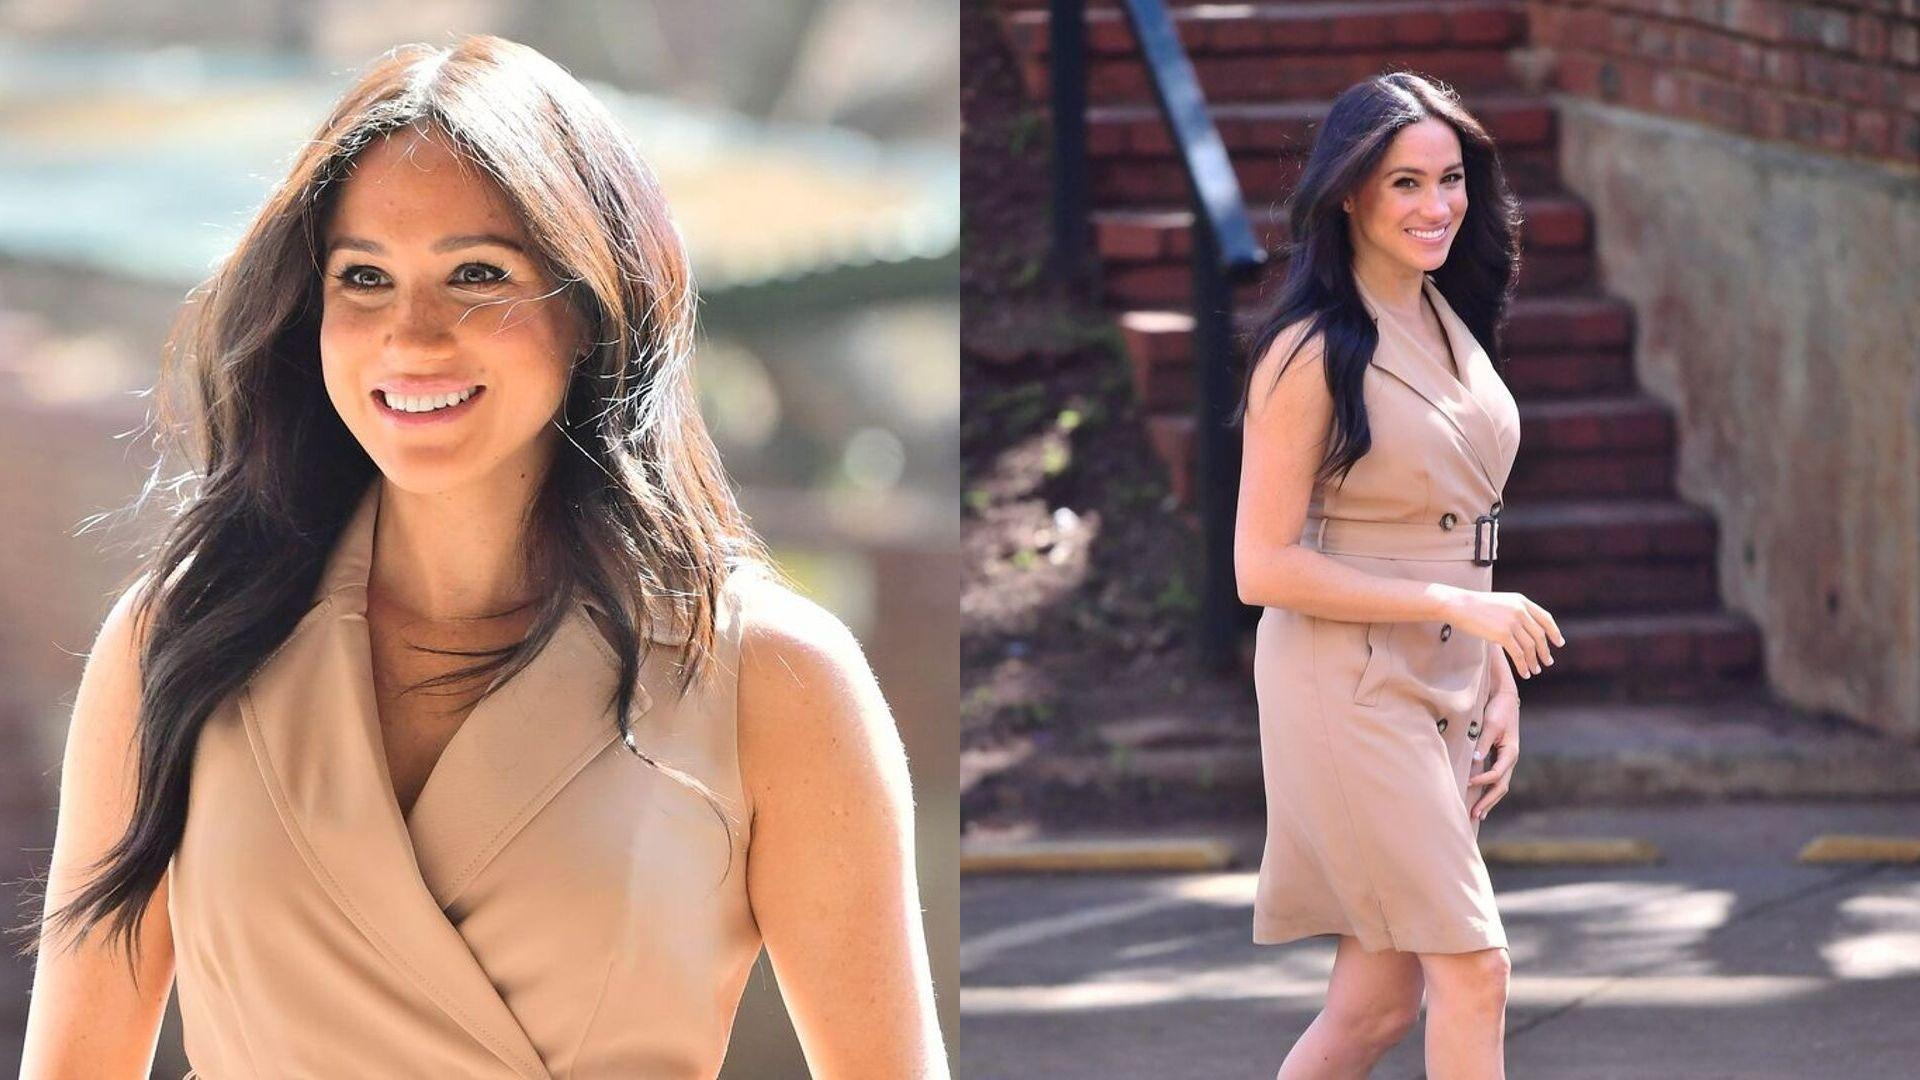 Where You Can Buy Meghan Markle's Dhs559 Trench Dress In Dubai